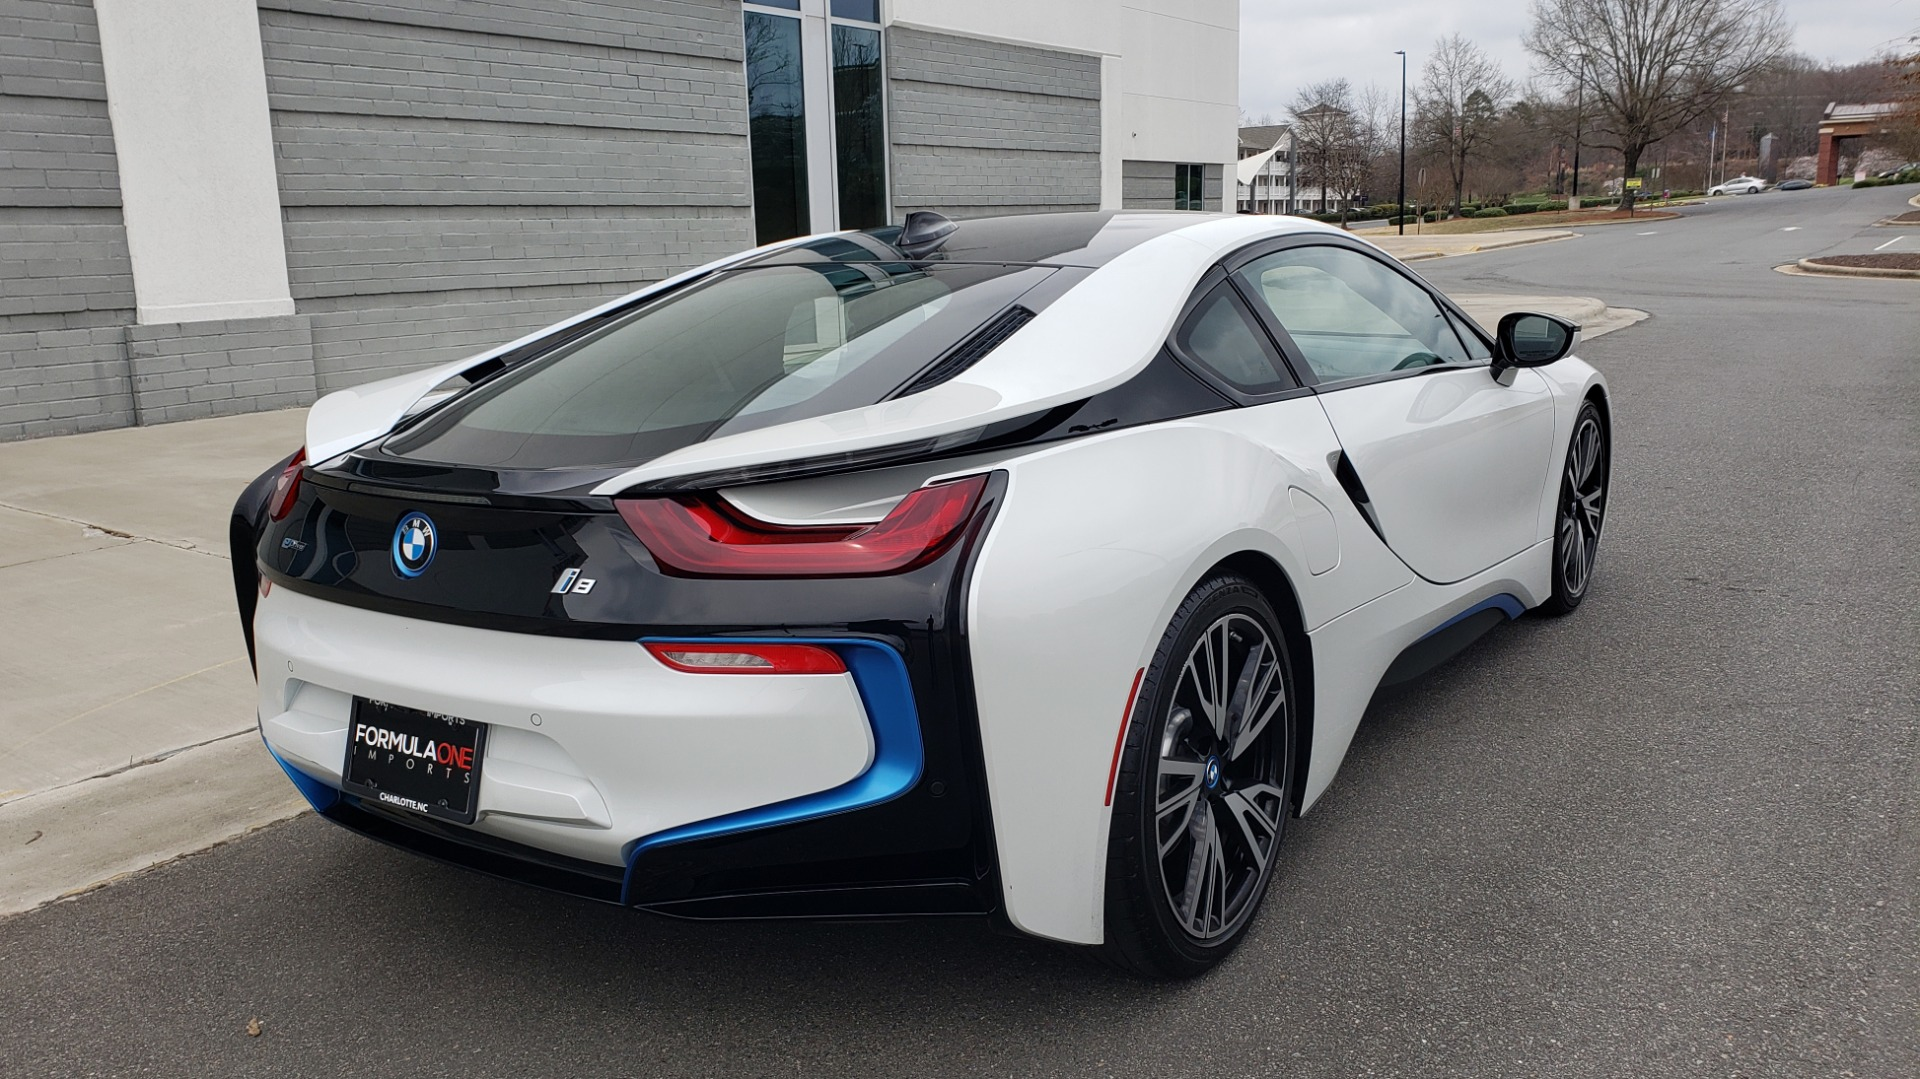 Used 2016 BMW i8 COUPE / GIGA WORLD / NAV / HUD / 20IN WHEELS / REARVIEW for sale Sold at Formula Imports in Charlotte NC 28227 9